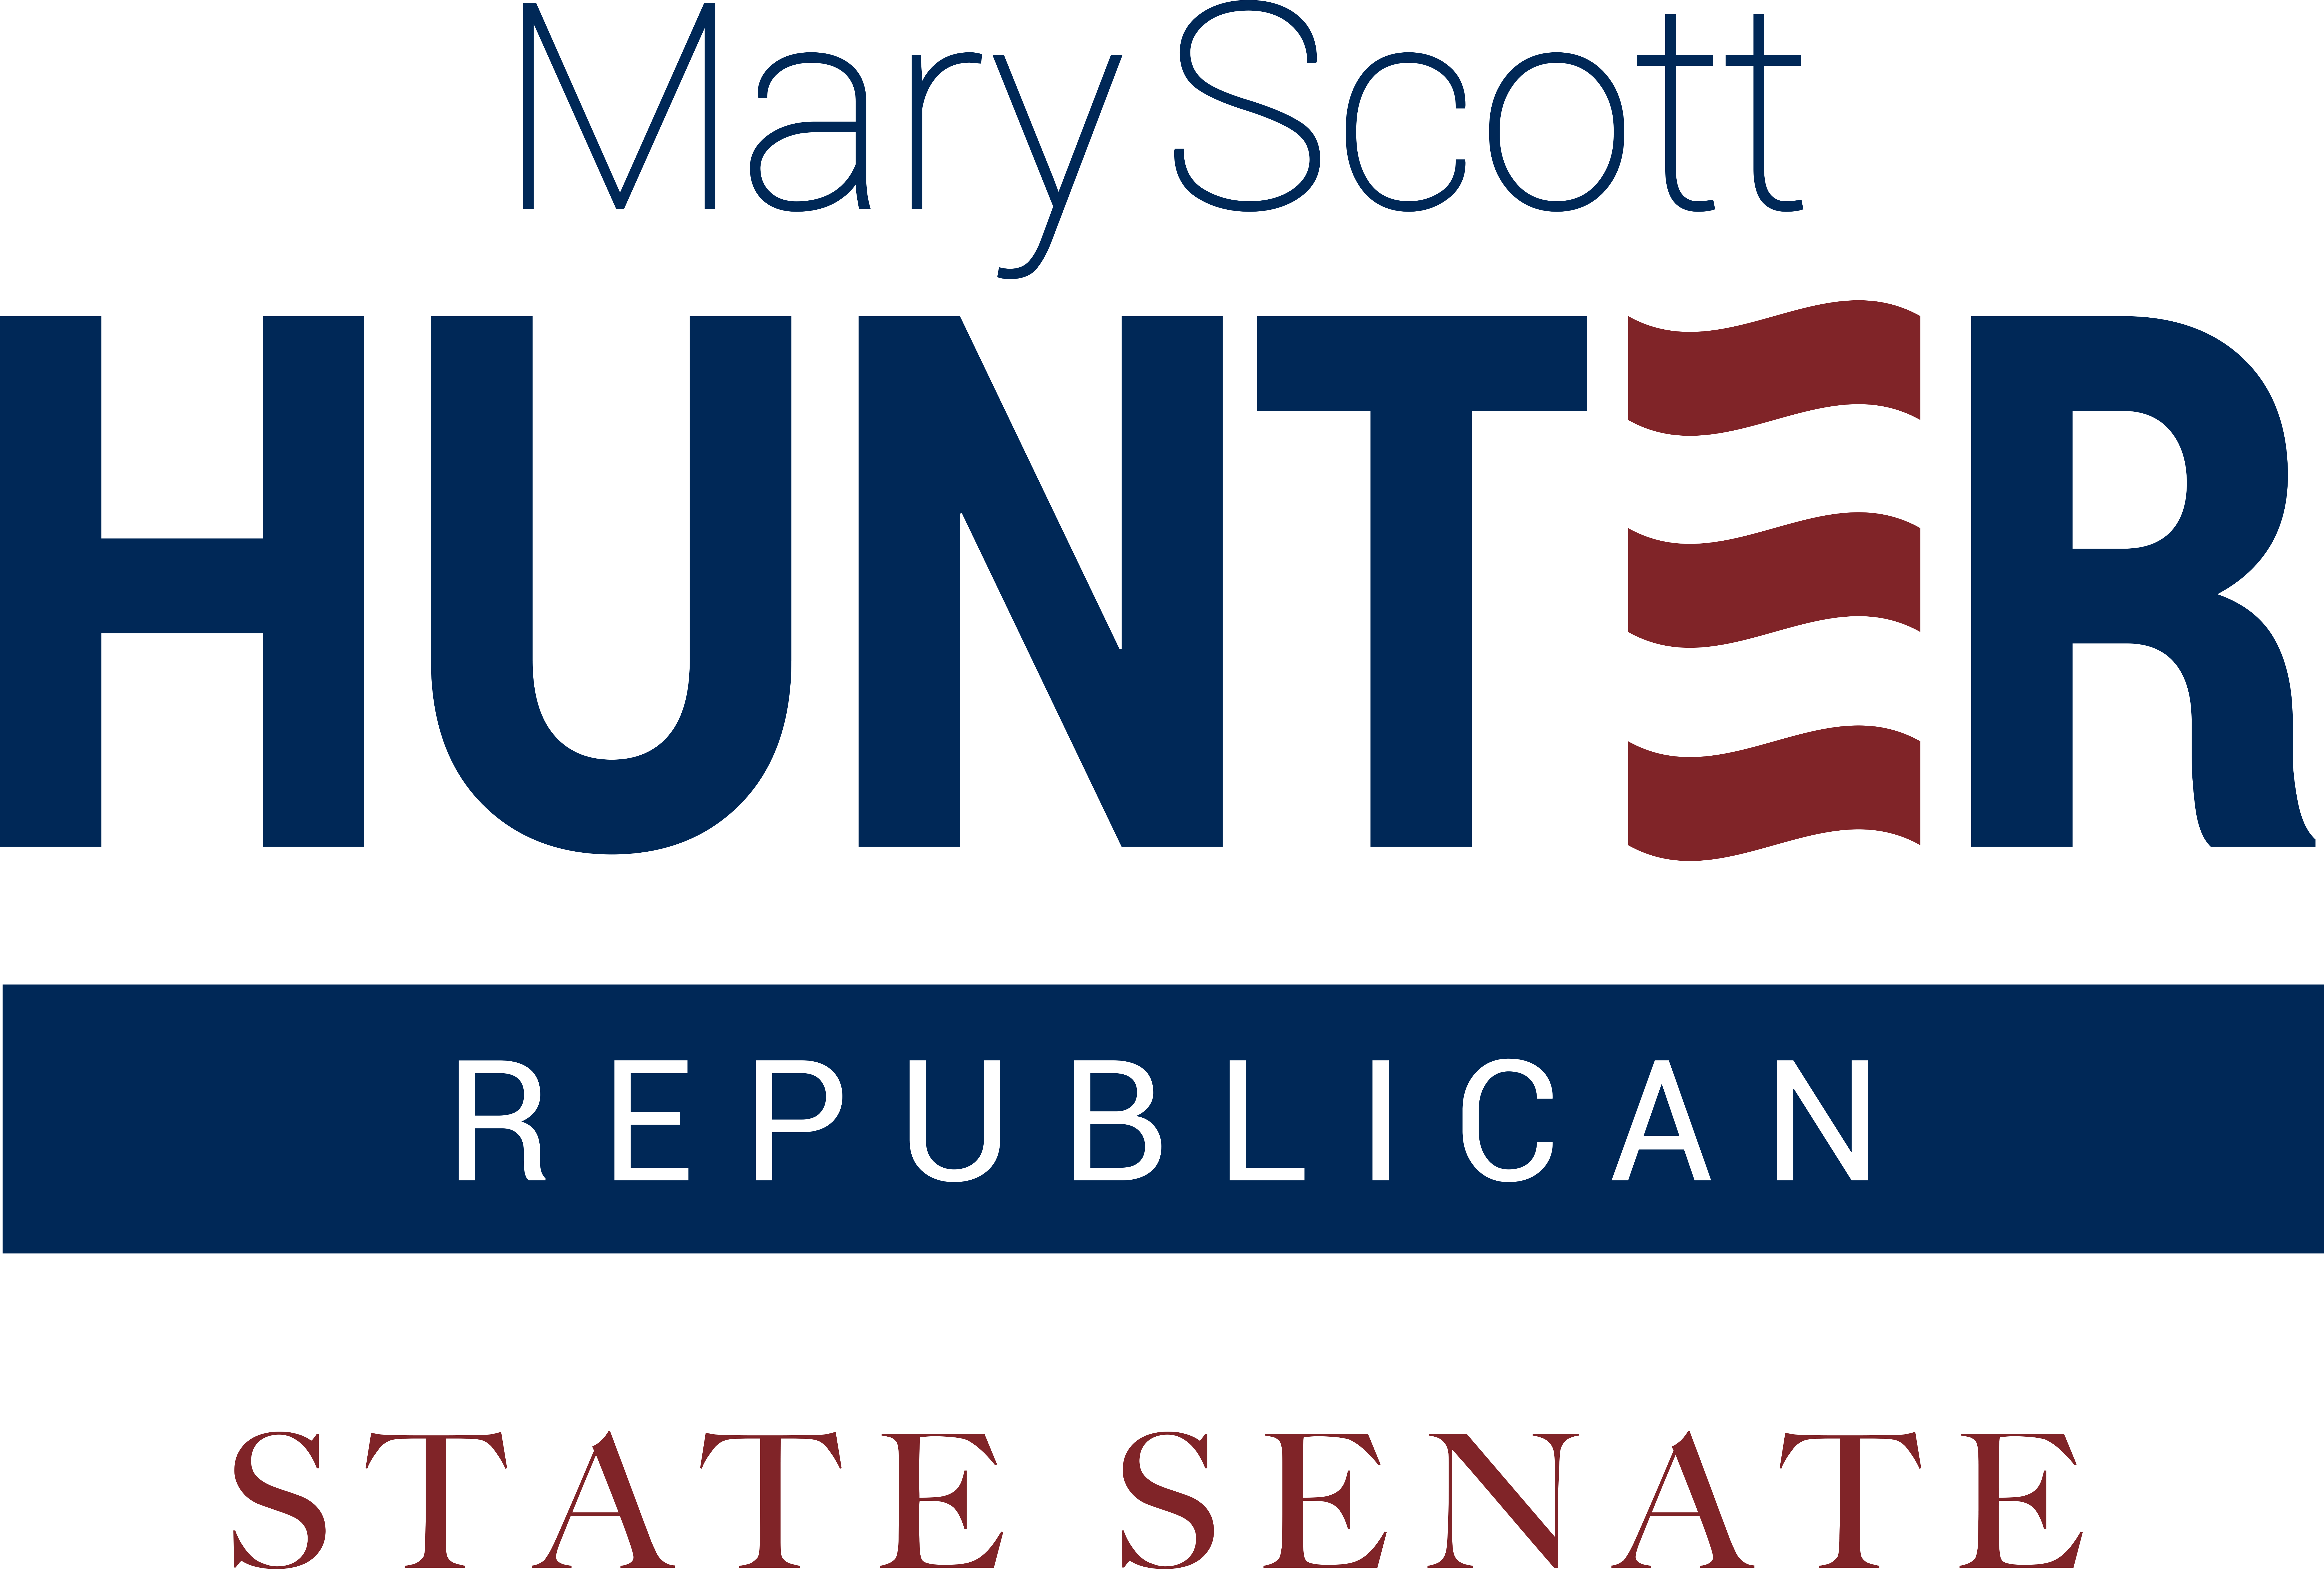 Mary Scott Hunter, State Senate